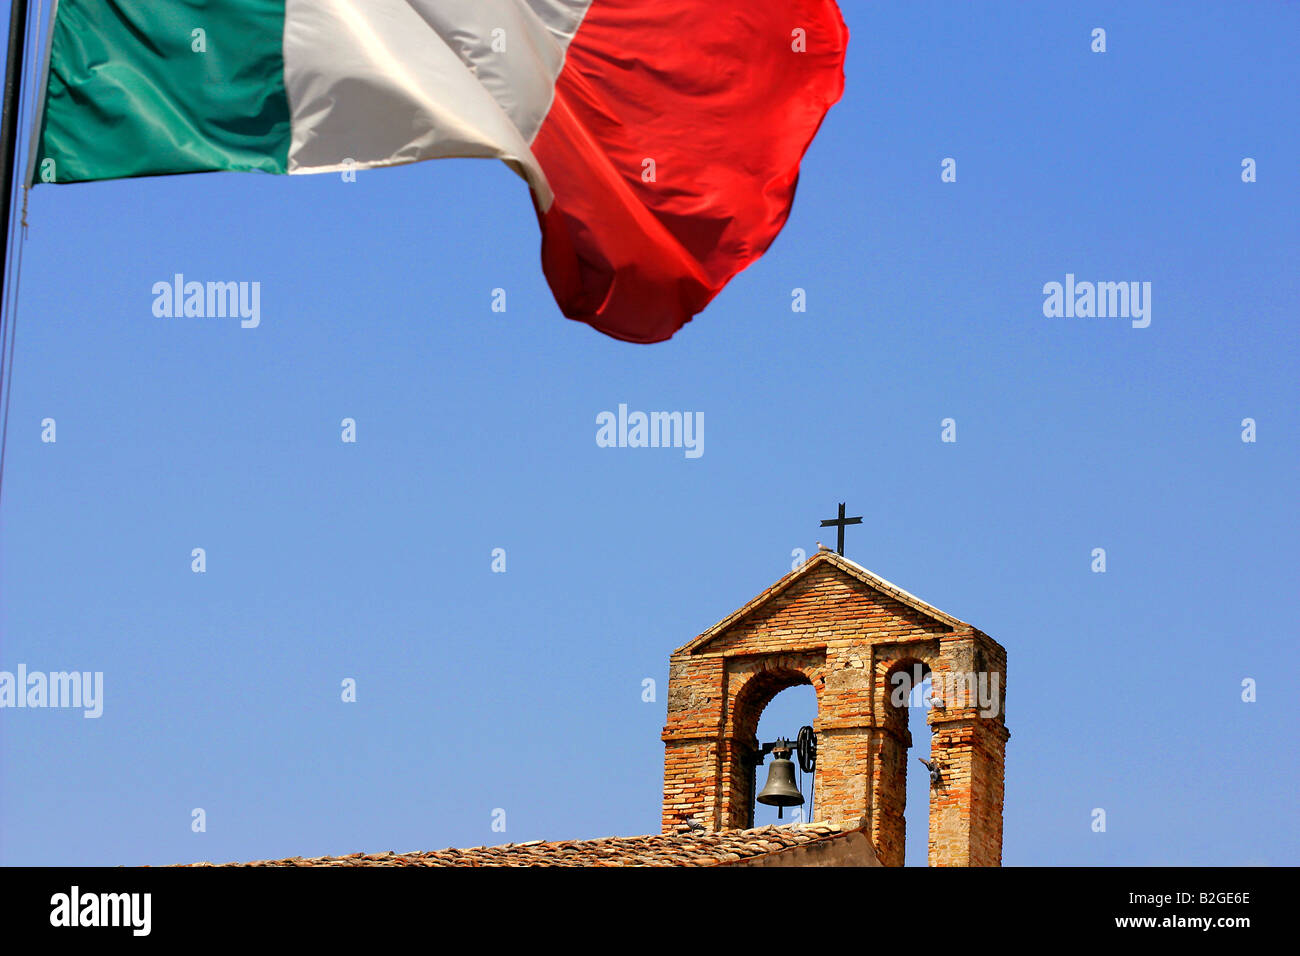 A church belltower and Italian tricolore flag. - Stock Image